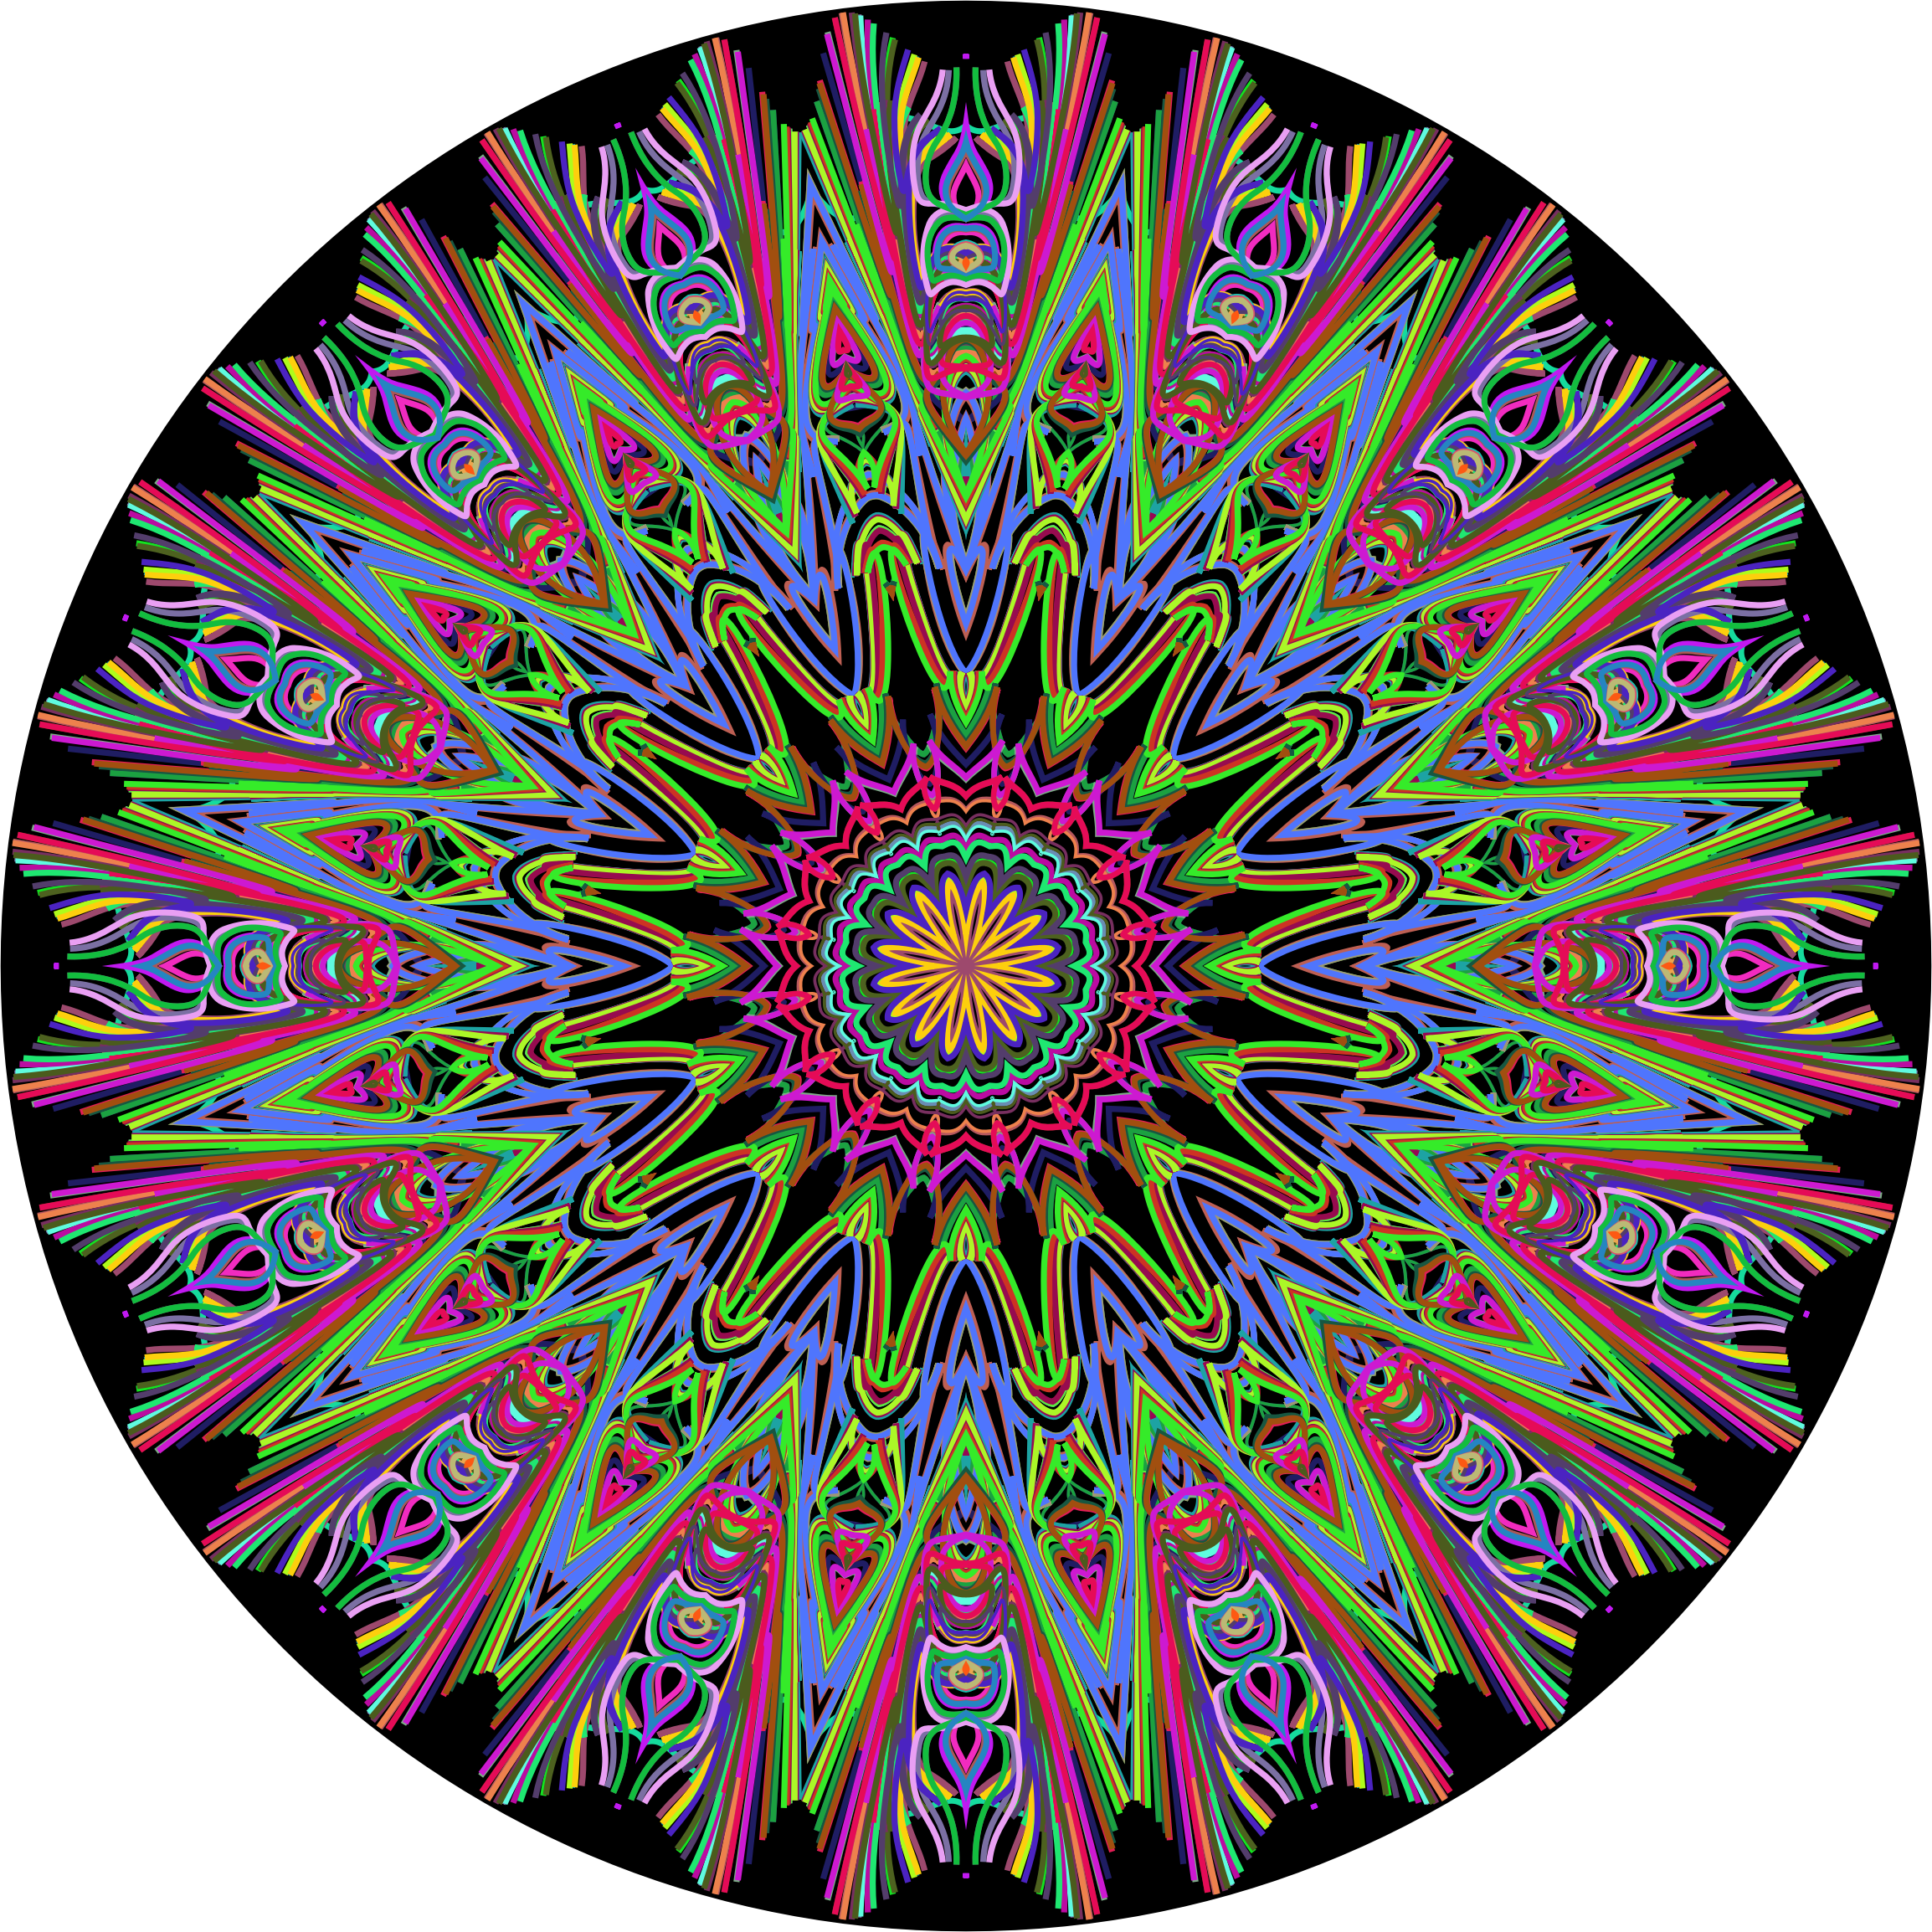 Prismatic Mandala Line Art 2 by GDJ